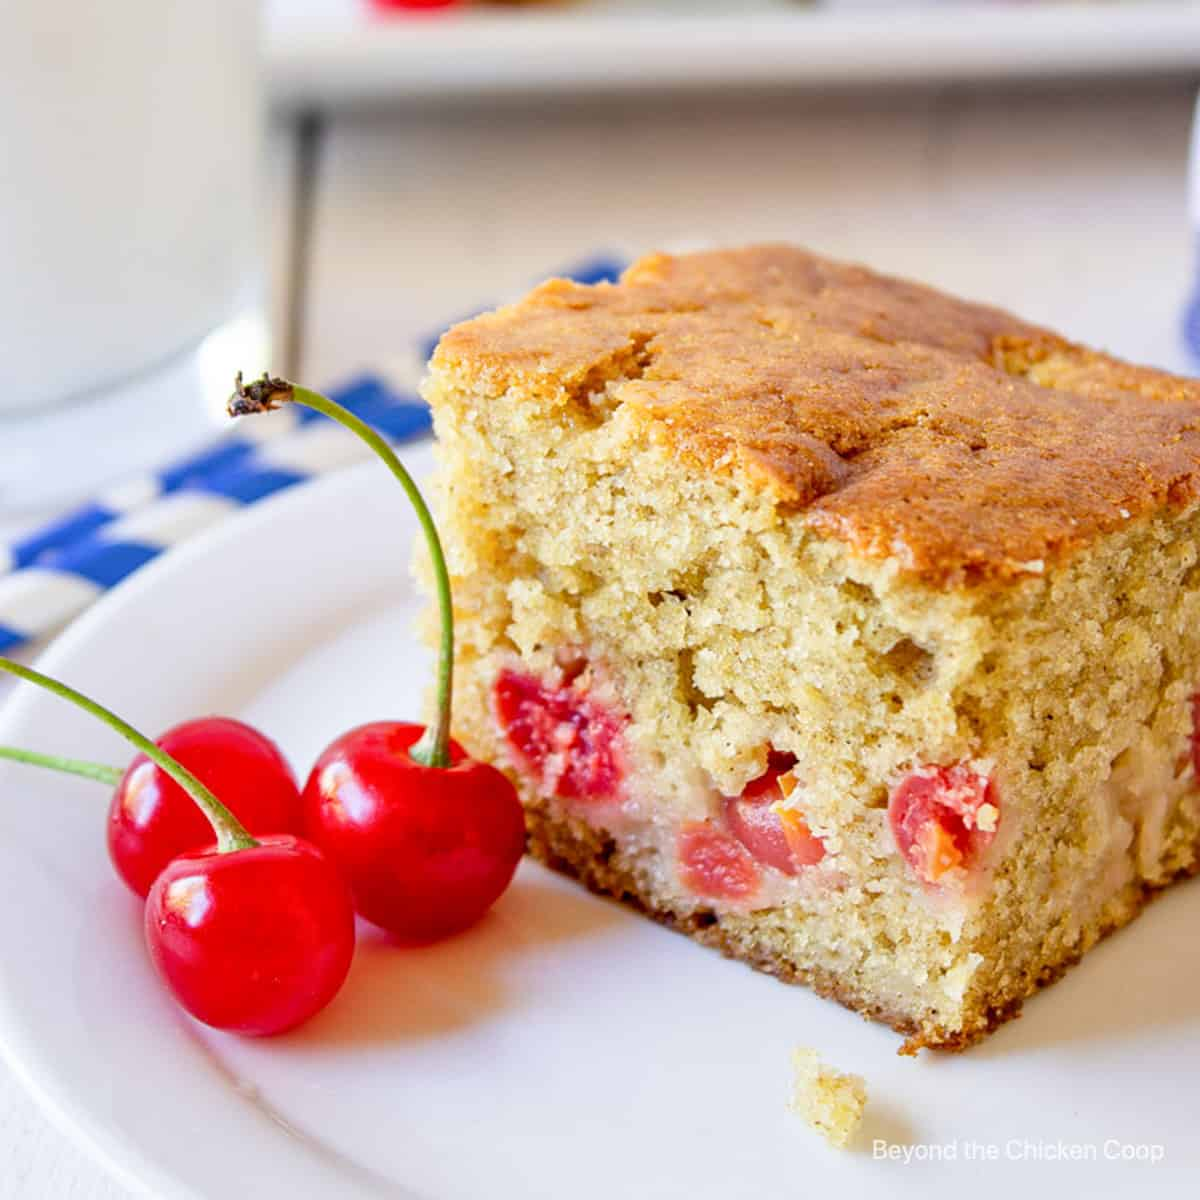 A square piece of cake filled with cherries.